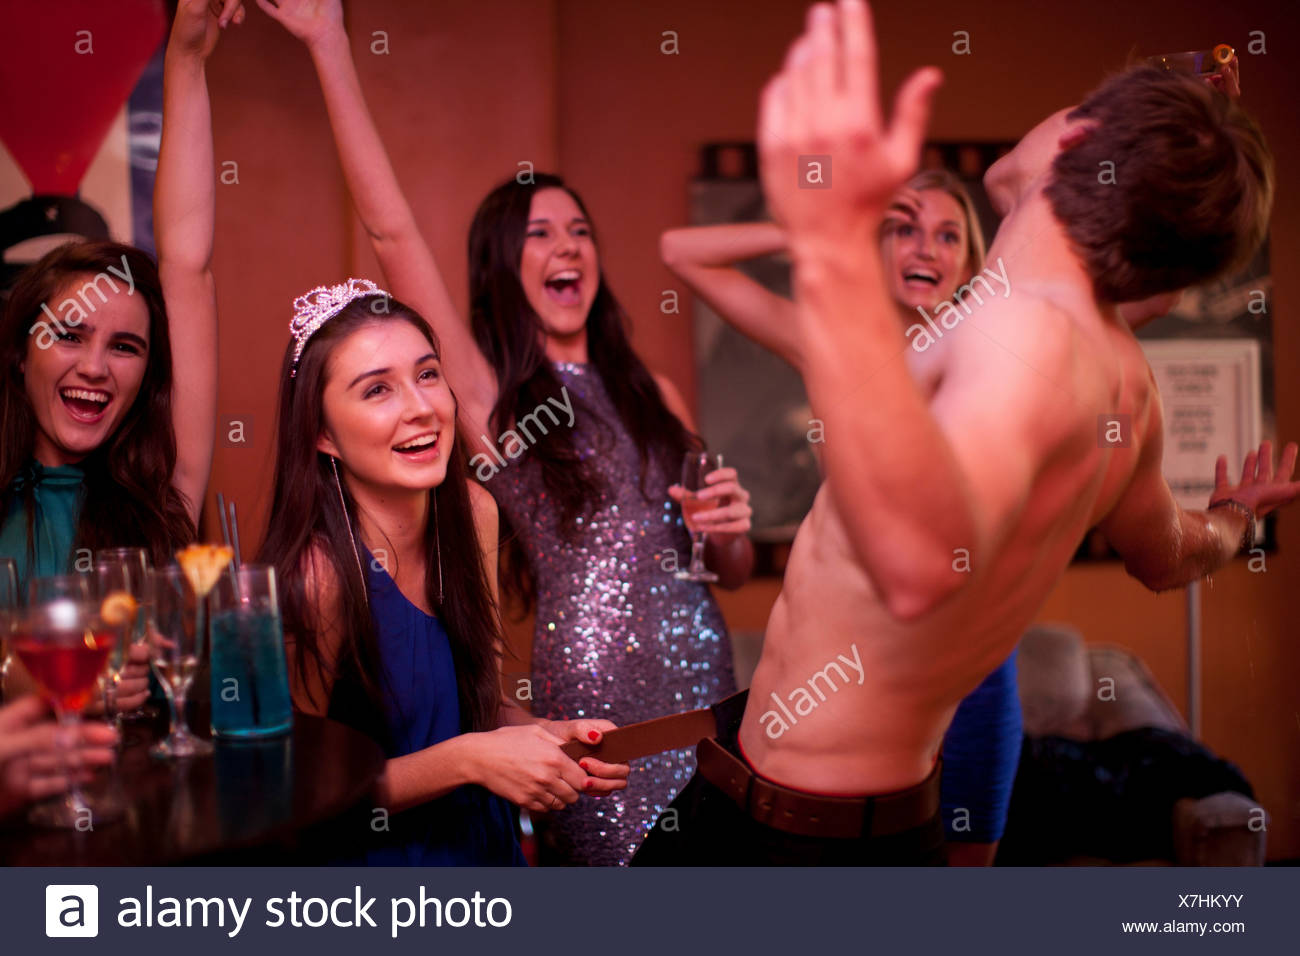 Male party picture stripper